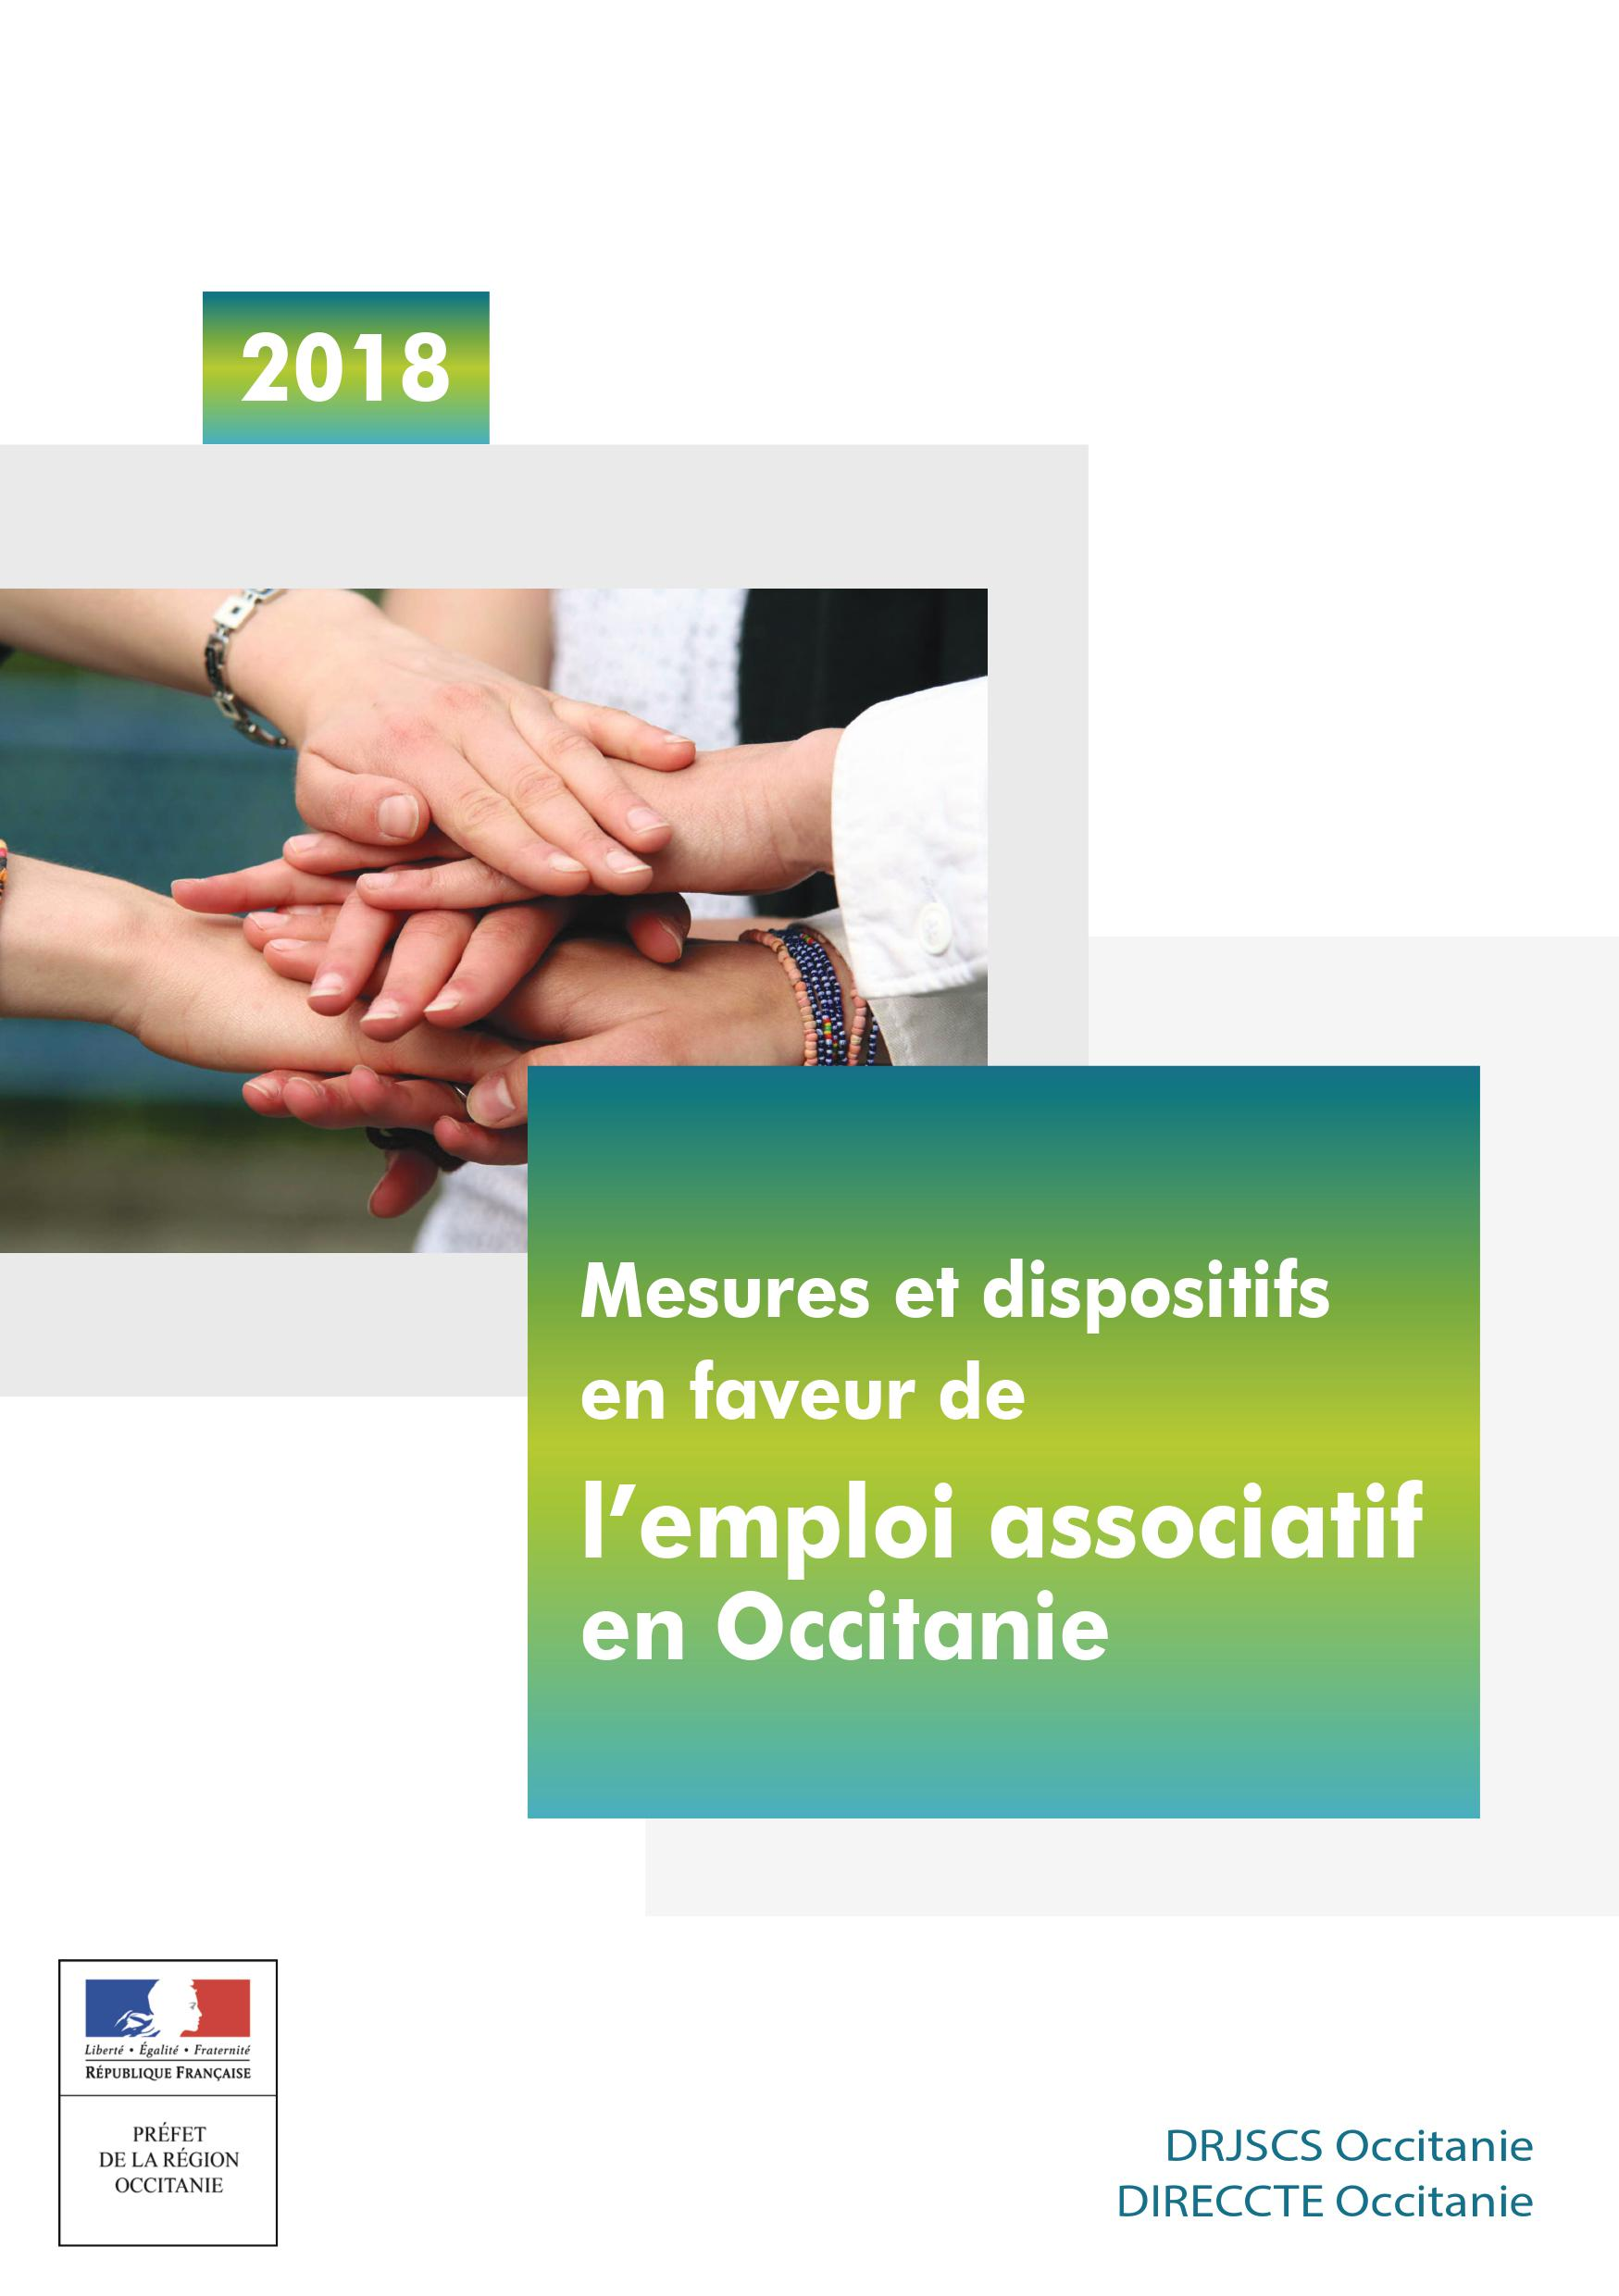 Couverture du guide sur l'emploi associatif en Occitanie